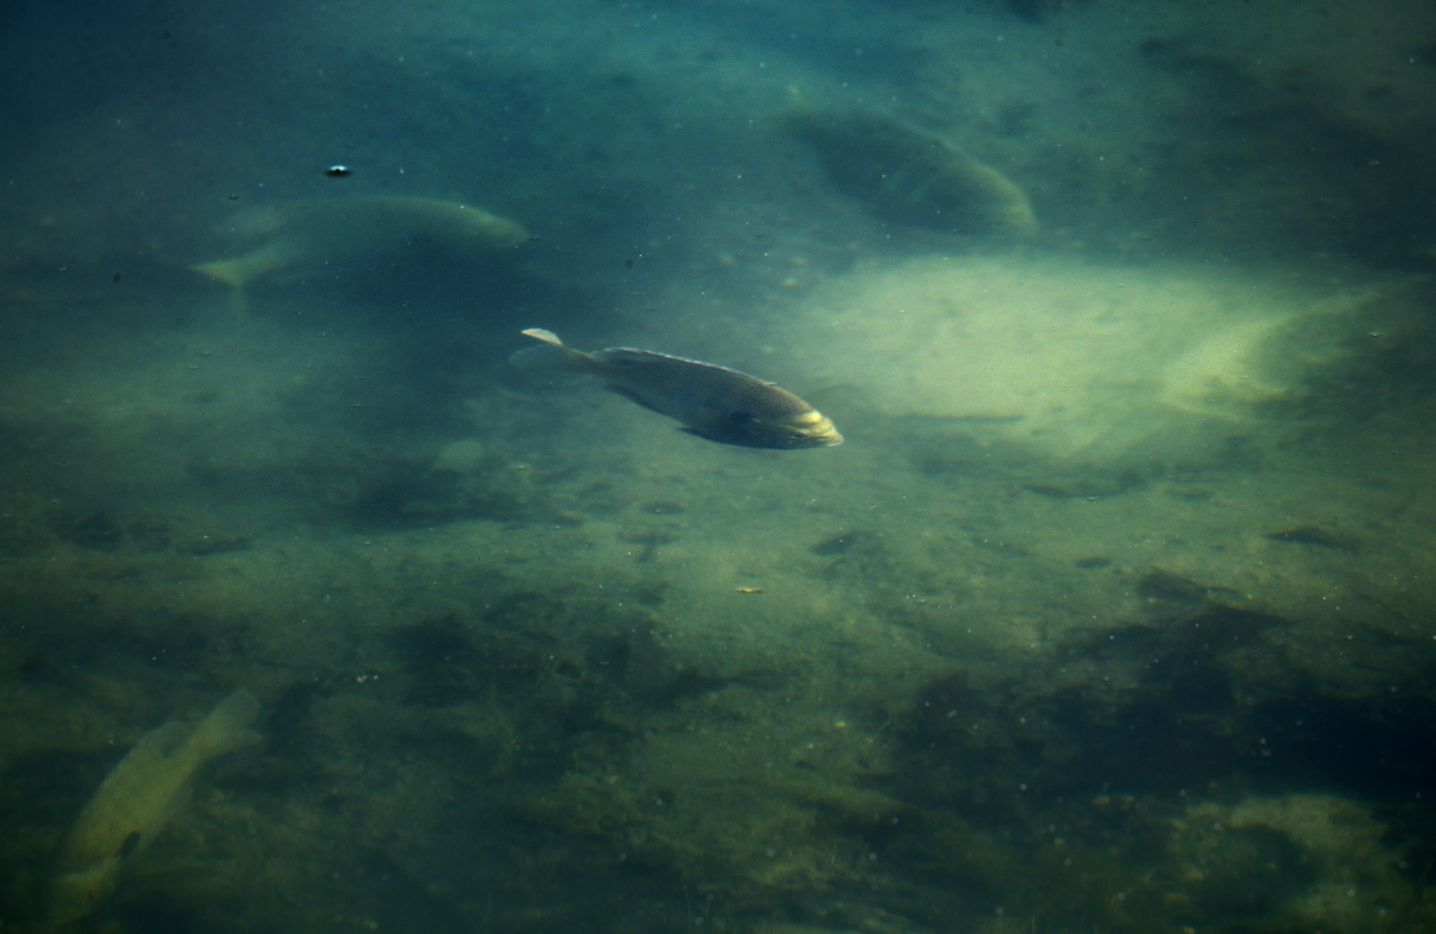 Fish swim in a lake near the lodge.